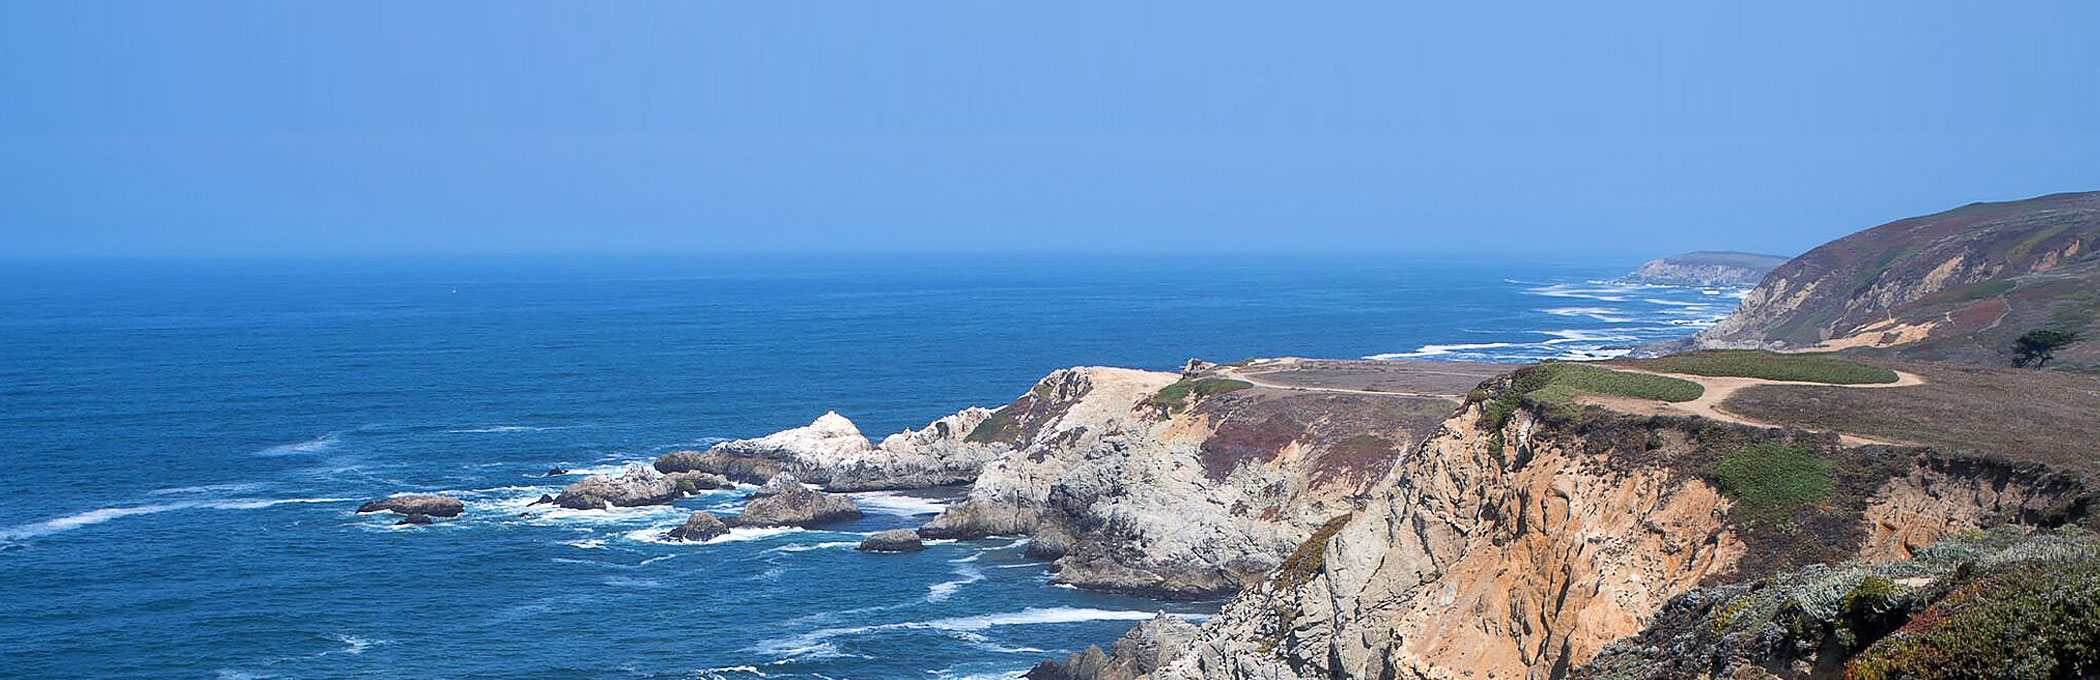 bodega bay Activities adventure header